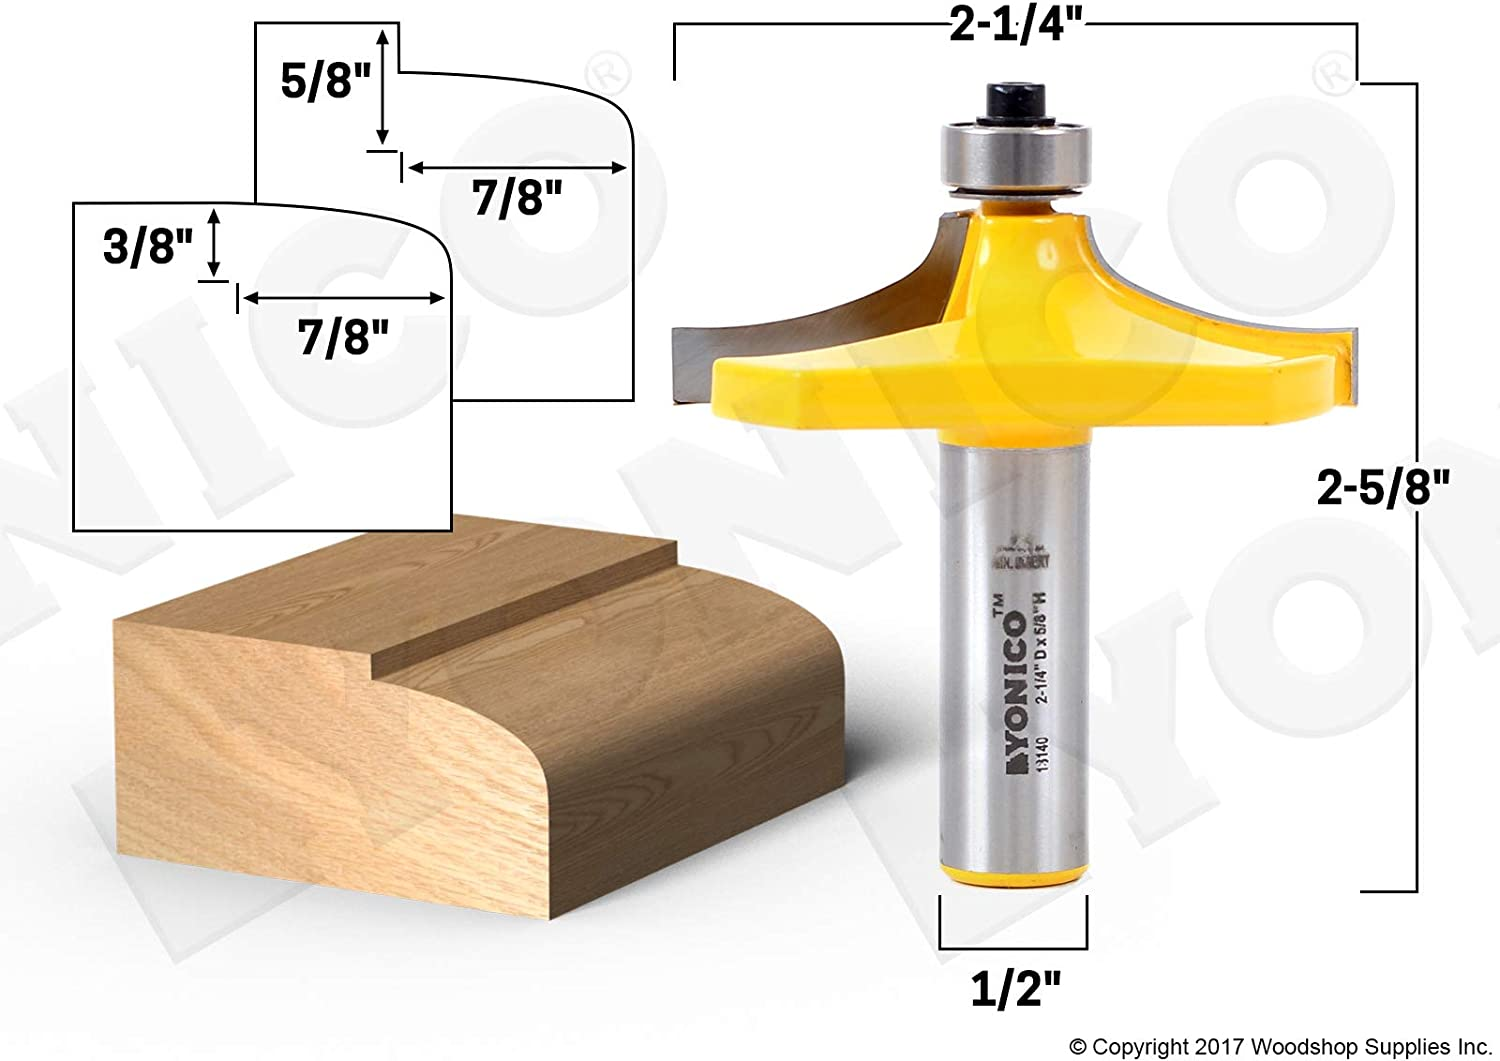 Yonico 13140 Thumbnail Table Edge Router Bit with Medium 1//2-Inch Shank